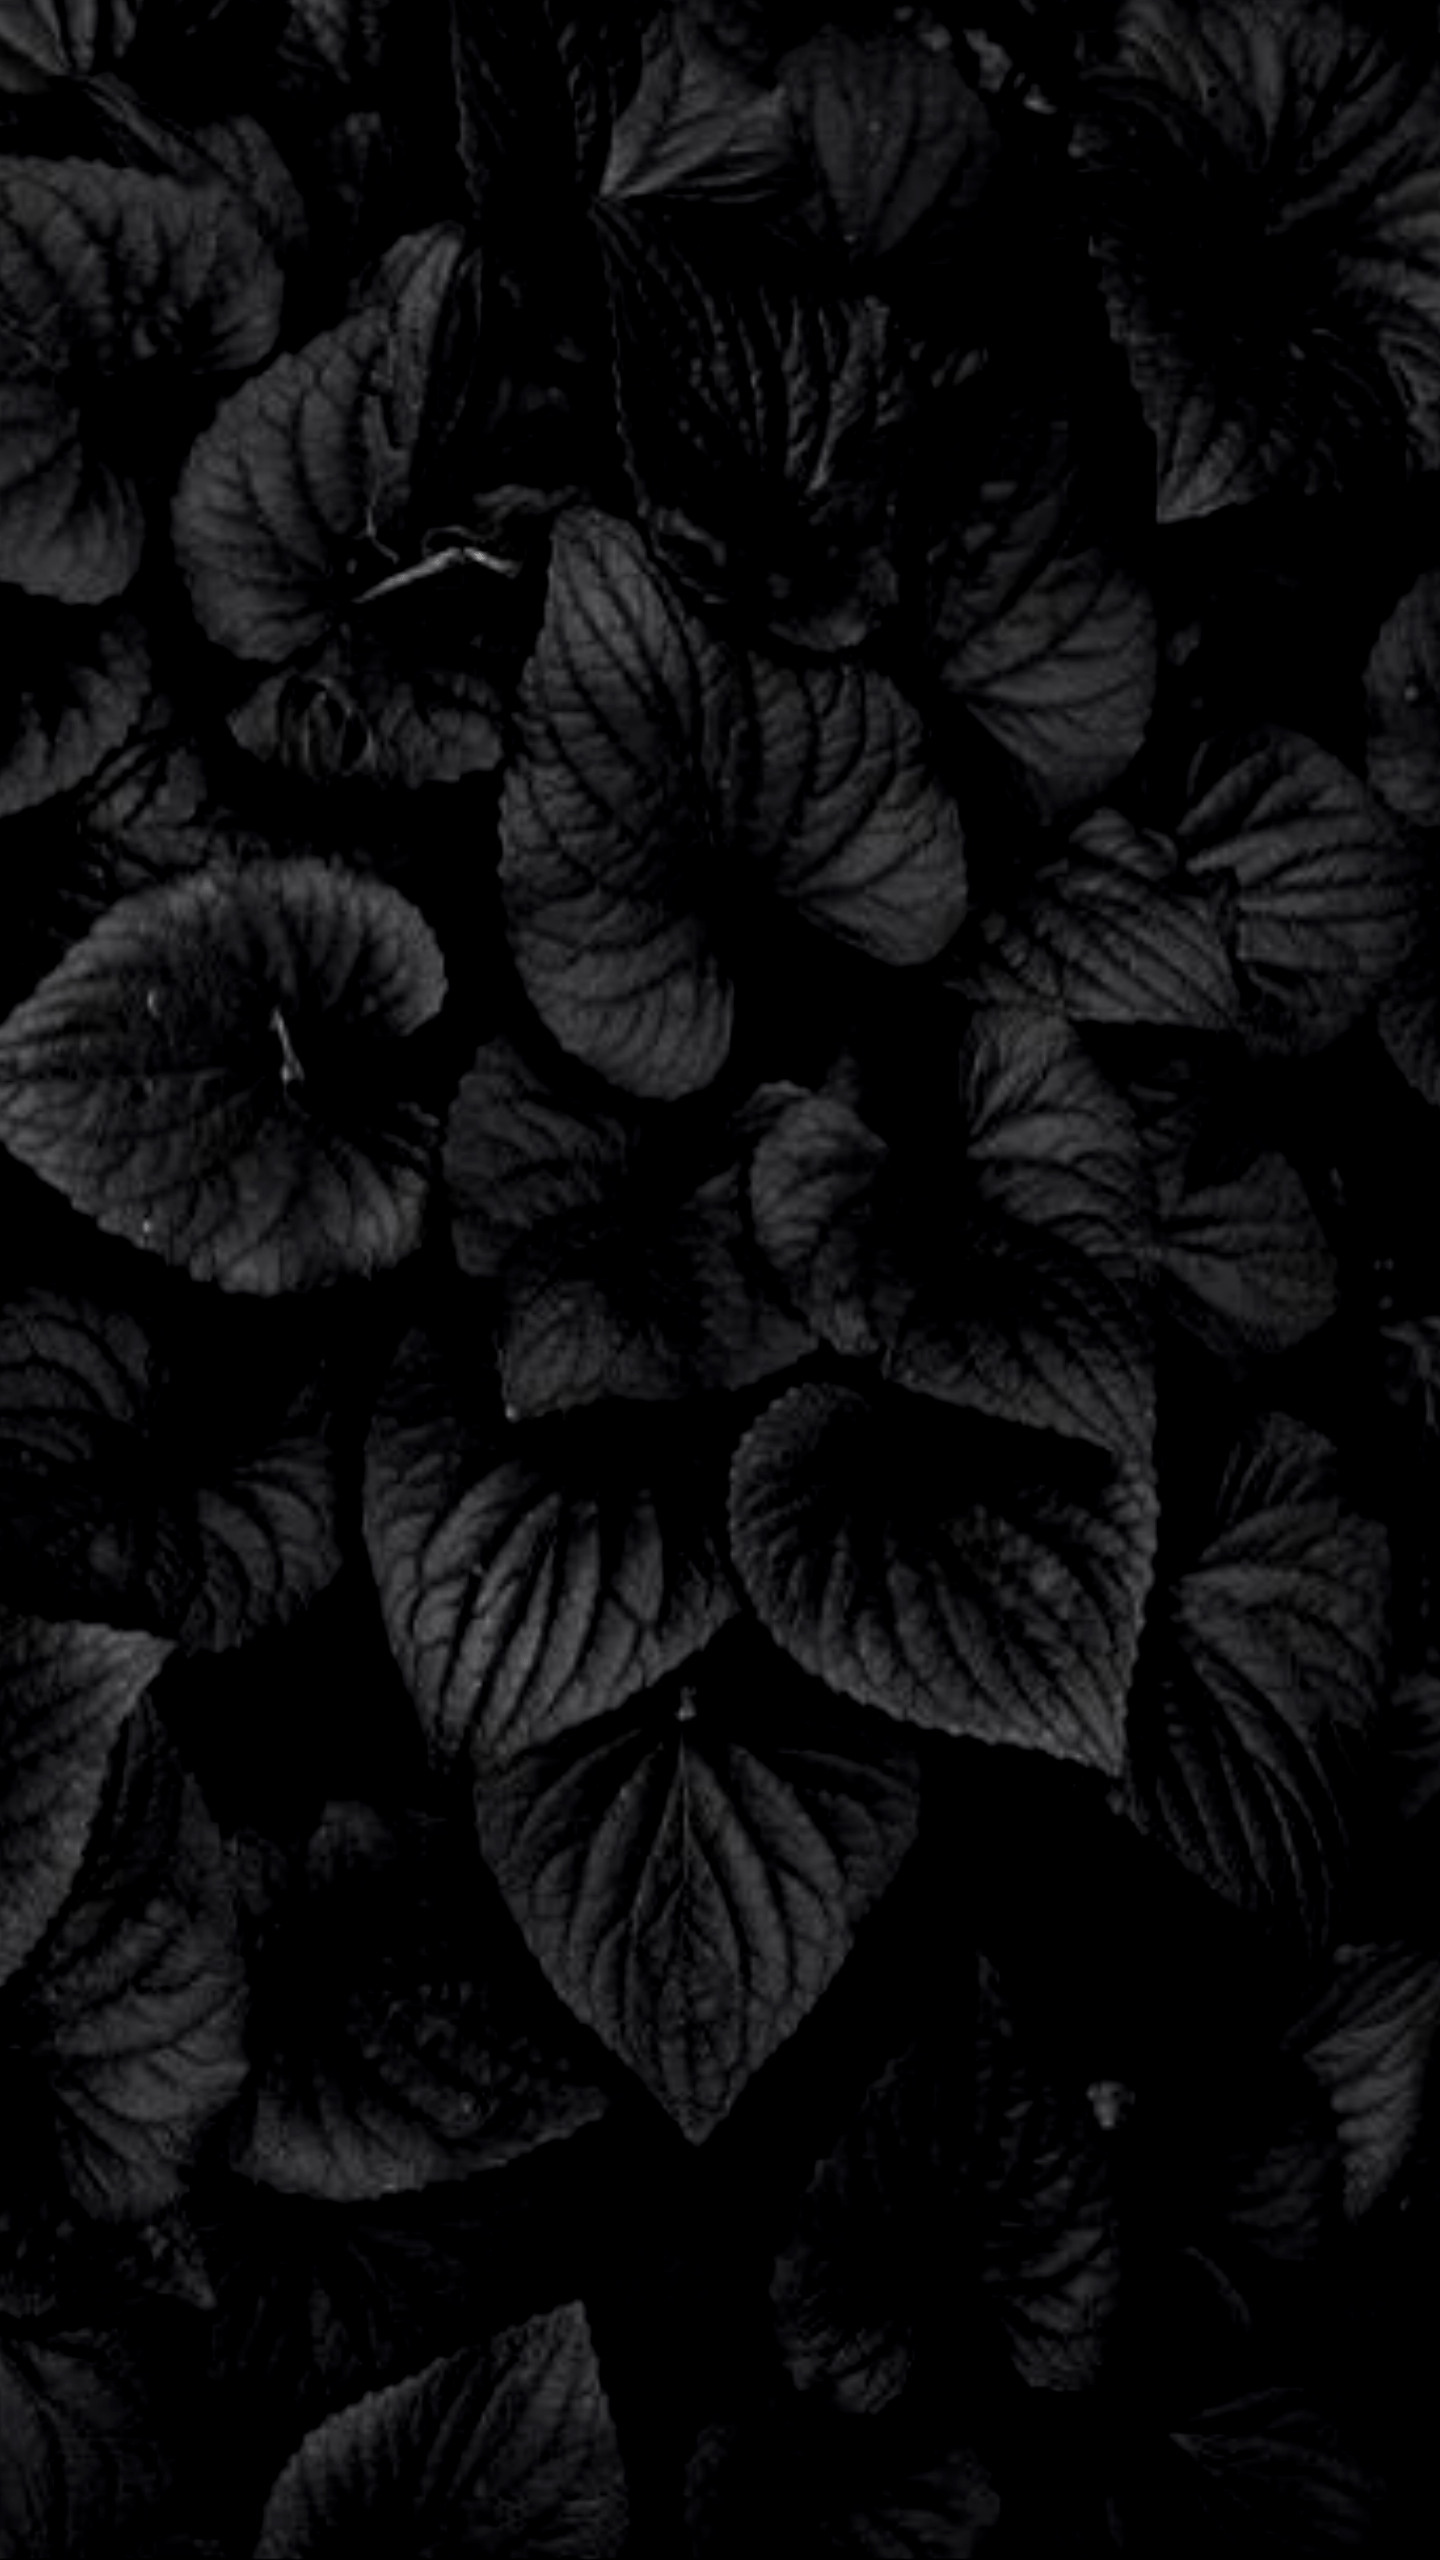 Amoled Black 4k Mobile Wallpapers Wallpaper Cave